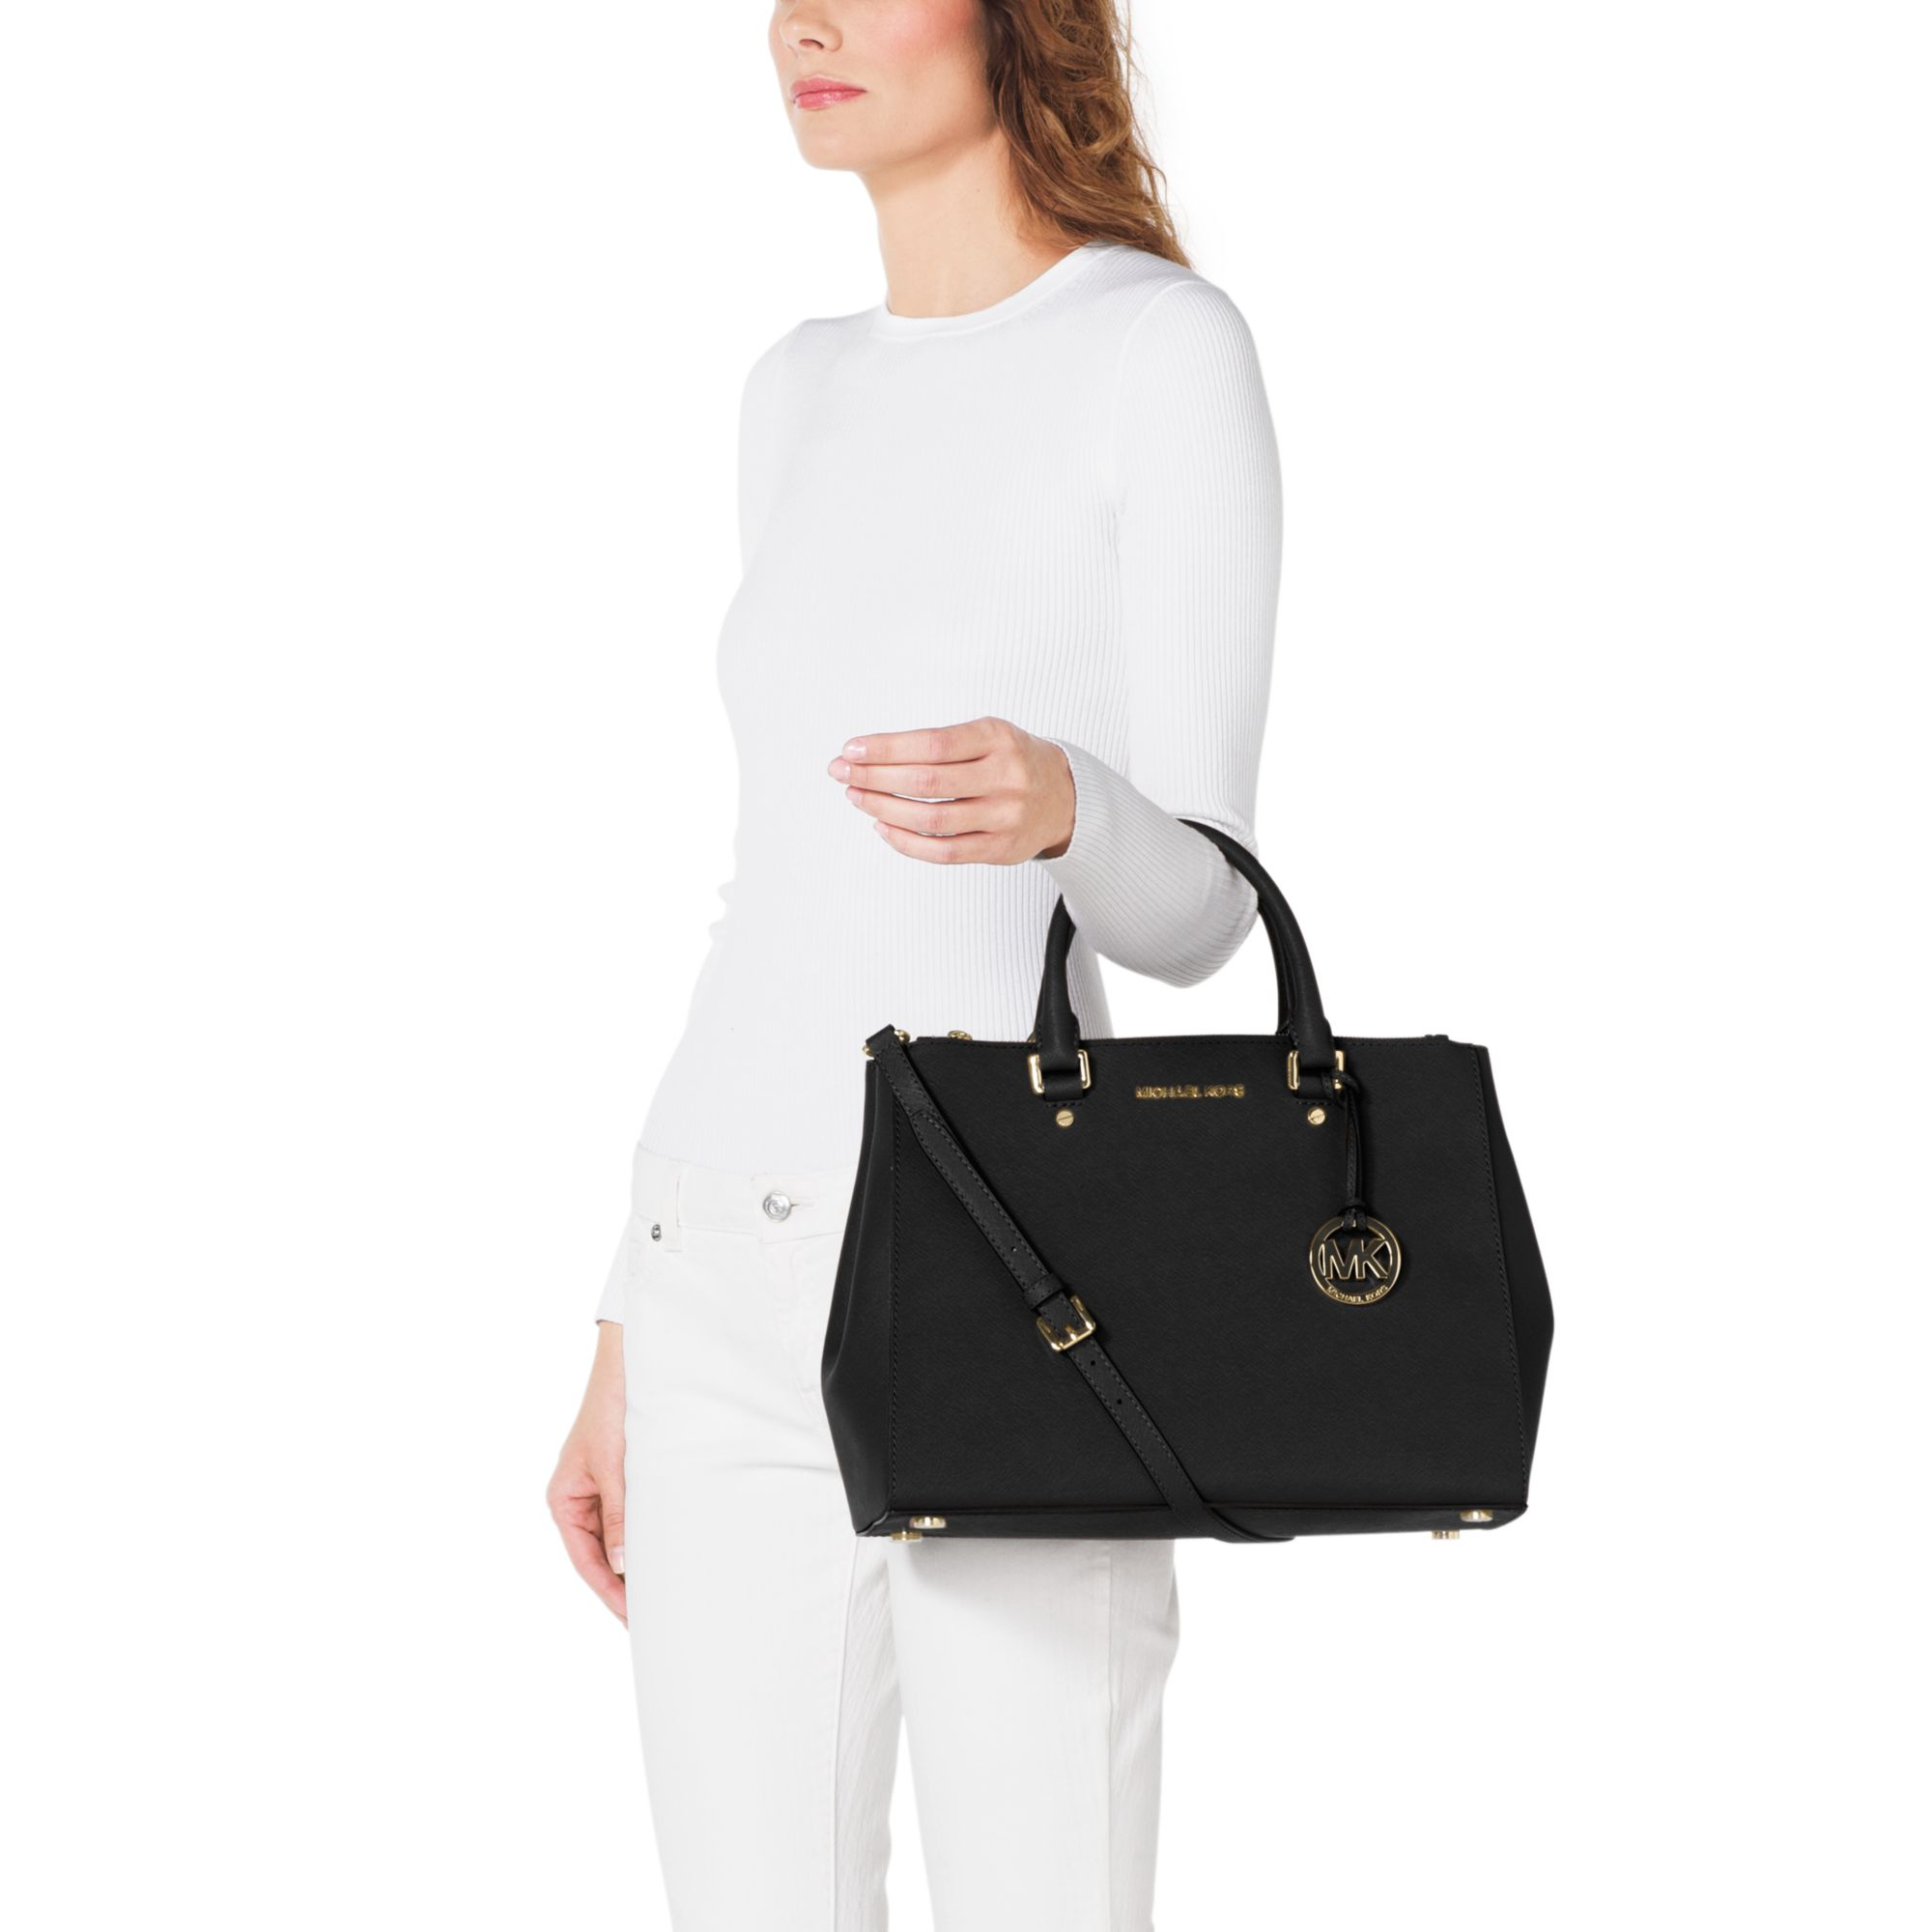 06aee467f776 ... netherlands lyst michael kors sutton saffiano leather large satchel in  black d83cc 66596